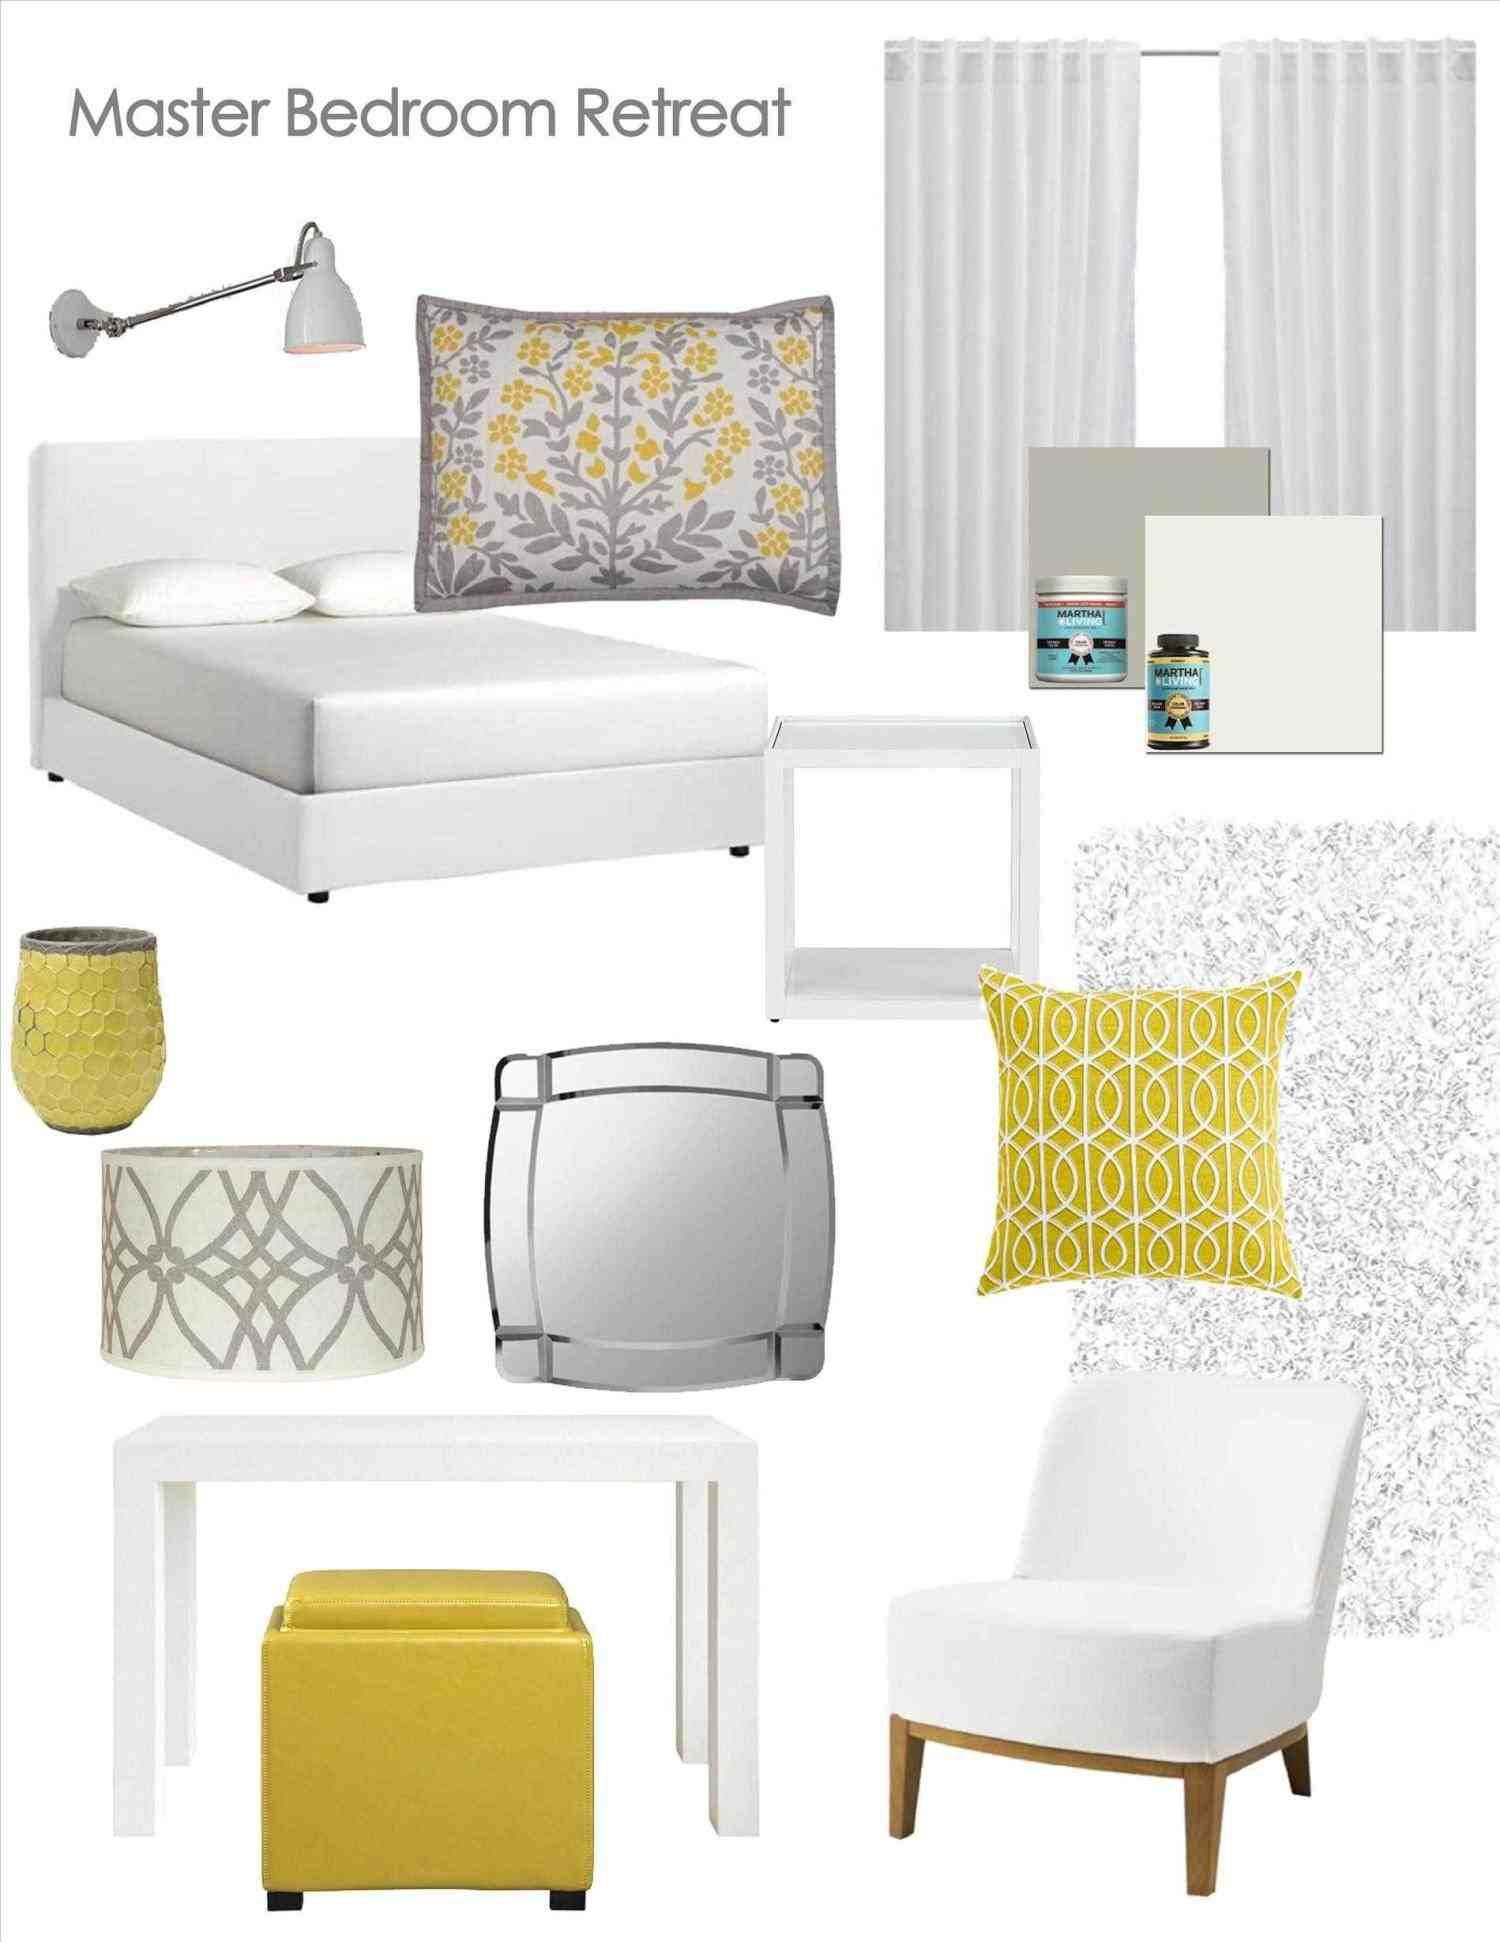 New Post grey and yellow bathroom accessories visit ...